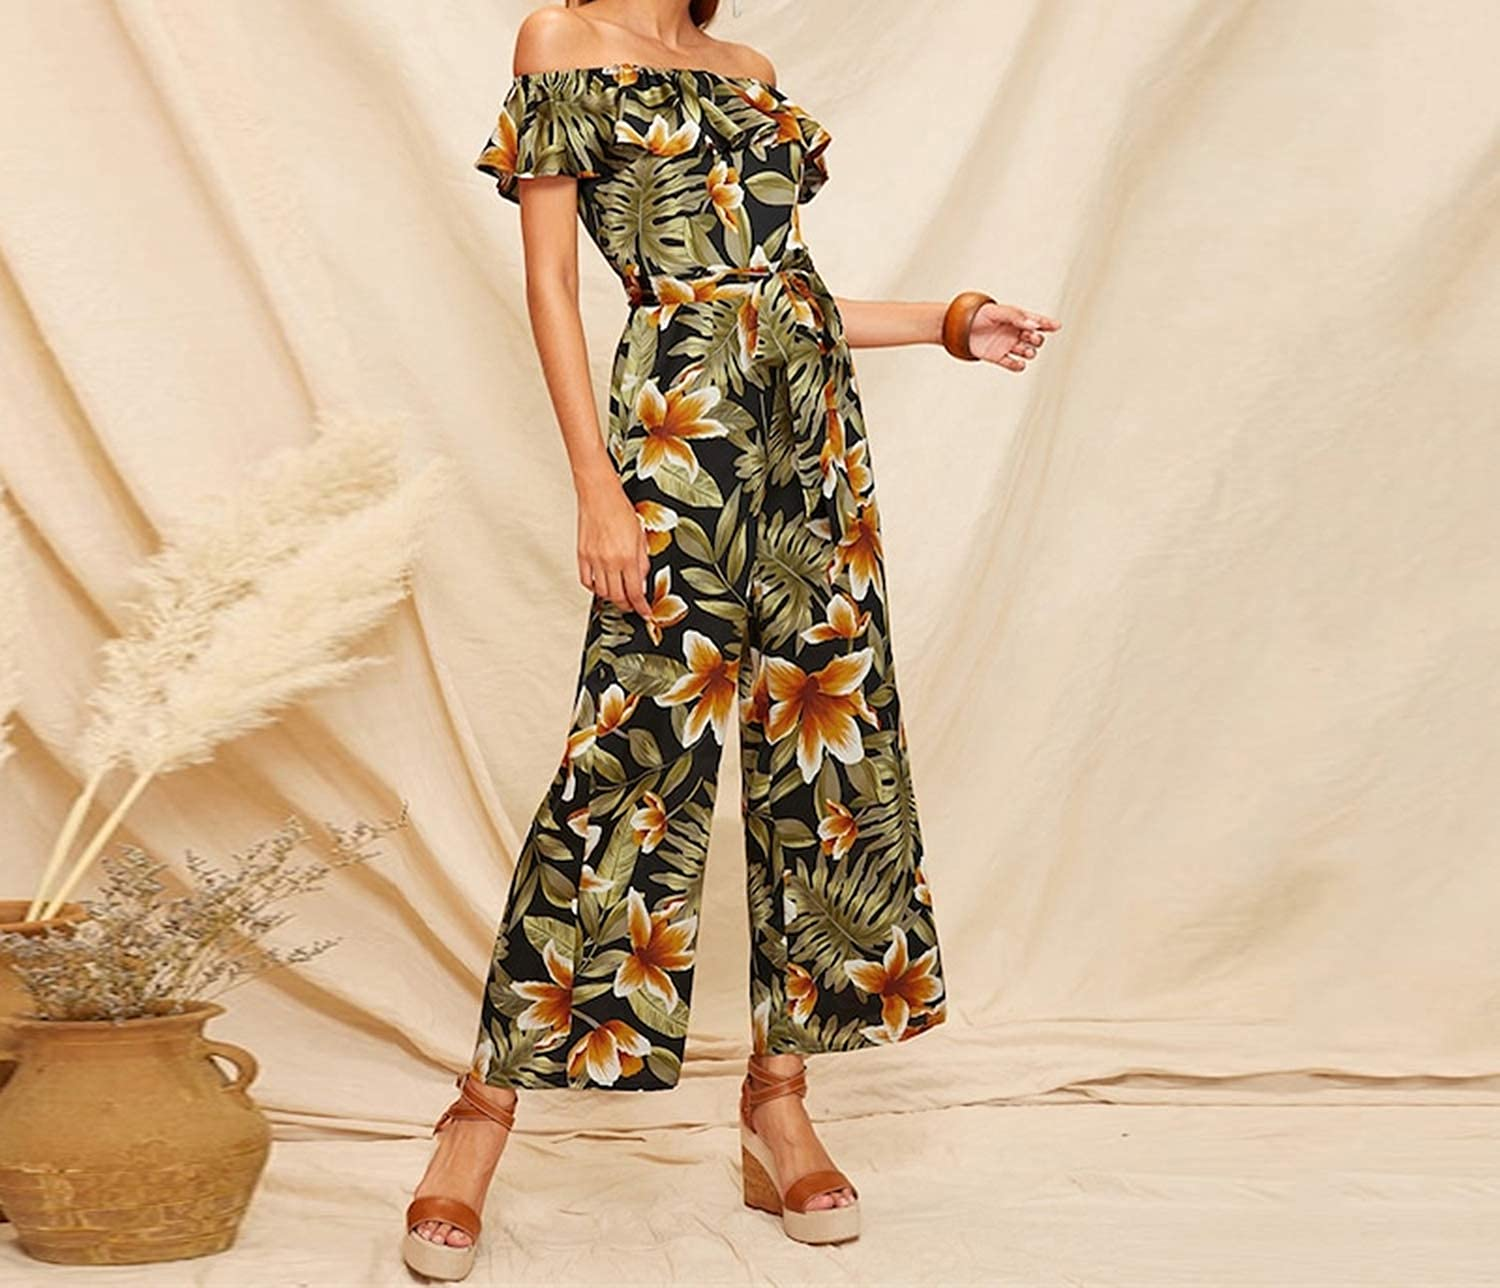 Fragrancety Foldover Off The Shoulder Ruffle Belted Wide Leg Boho Jumpsuits for Women Summer Holiday Wear Casual Jumpsuit,Multi,XS